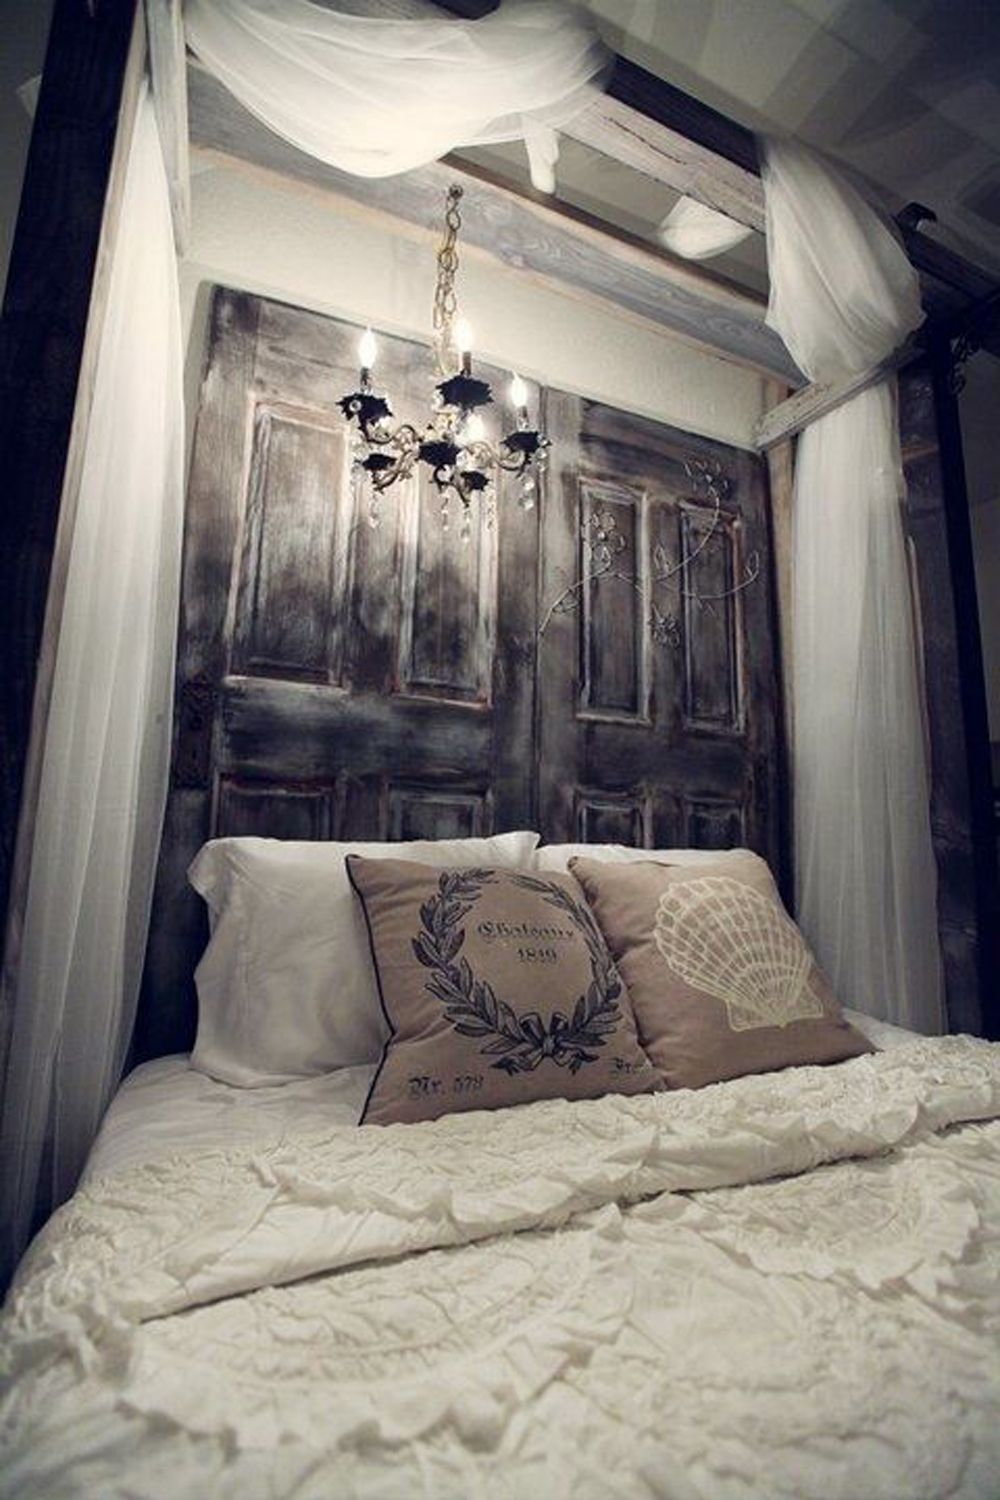 diy wooden headboard ideas: get the rustic look | decor styles